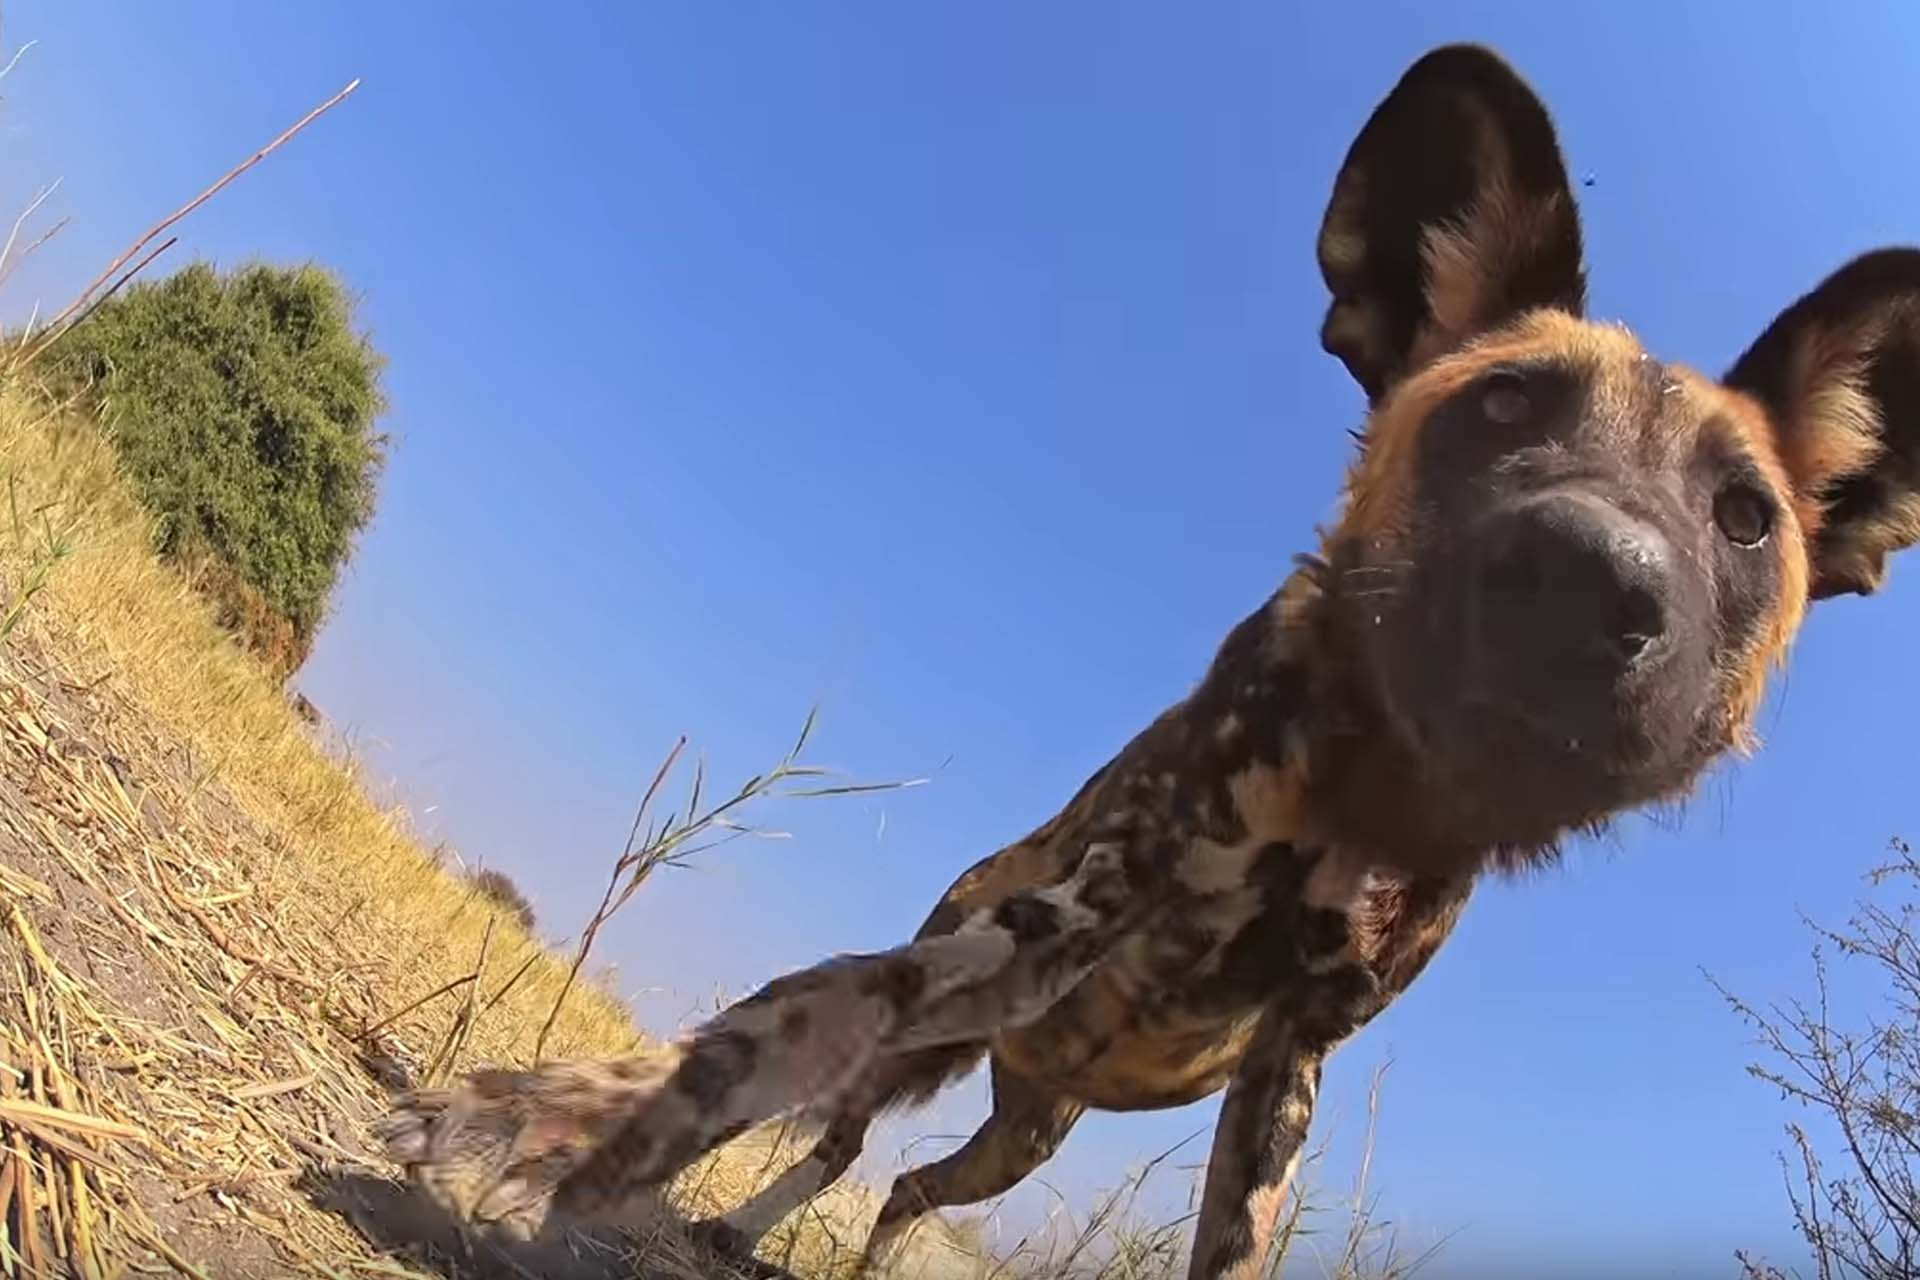 Spy Pup must first be accepted by the wild dog